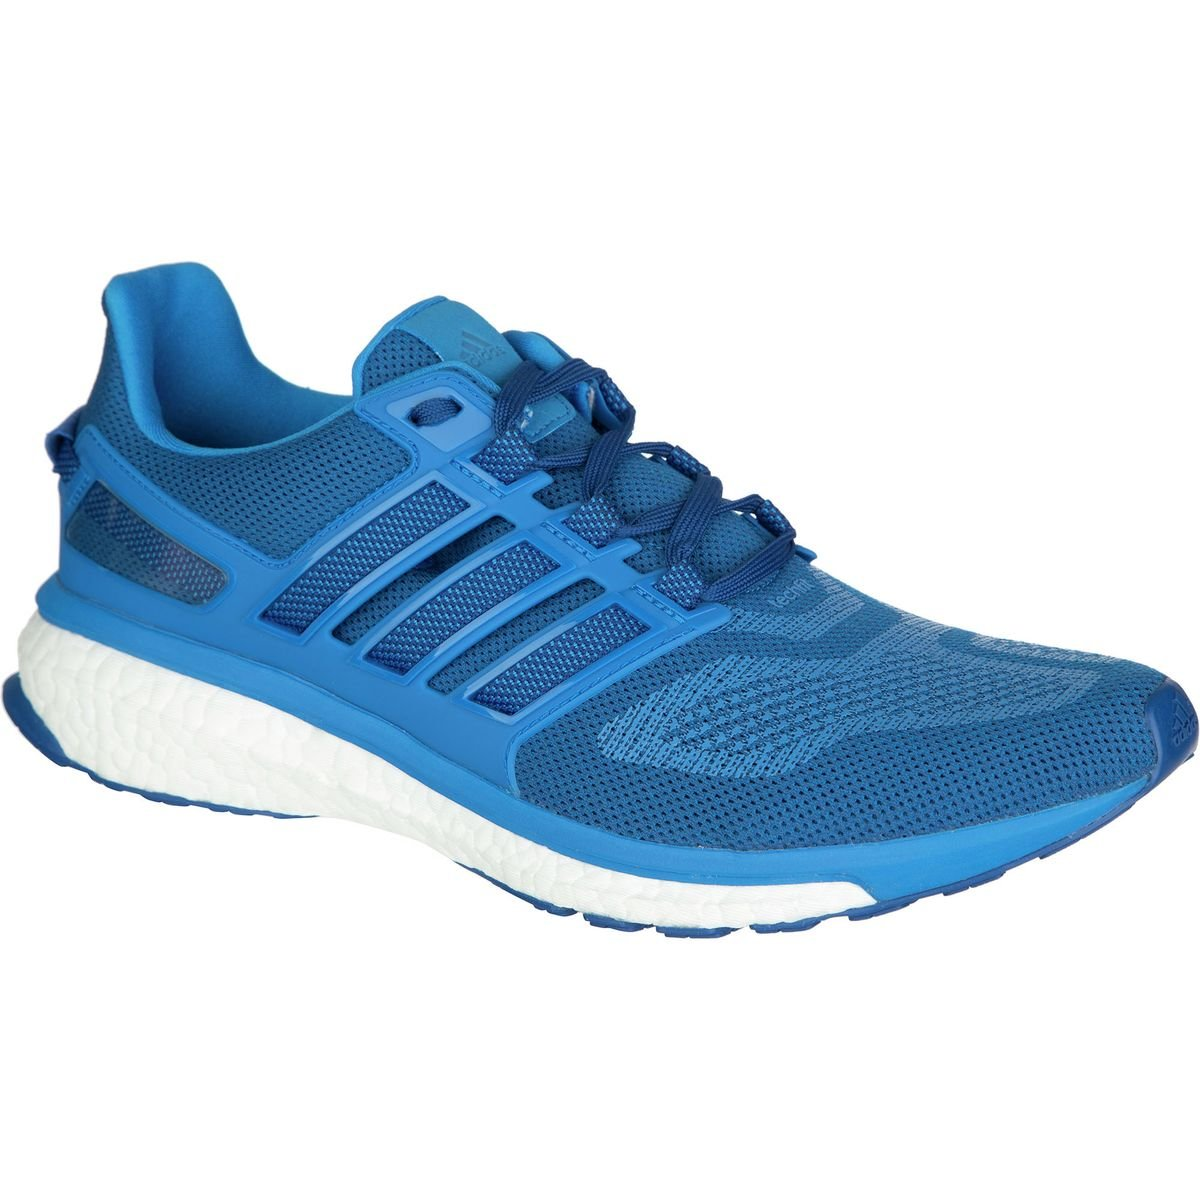 adidas Performance Men's Energy Boost 3 M Running Shoe B01LZKW9HE 8 D(M) US|Blue / Blue-white